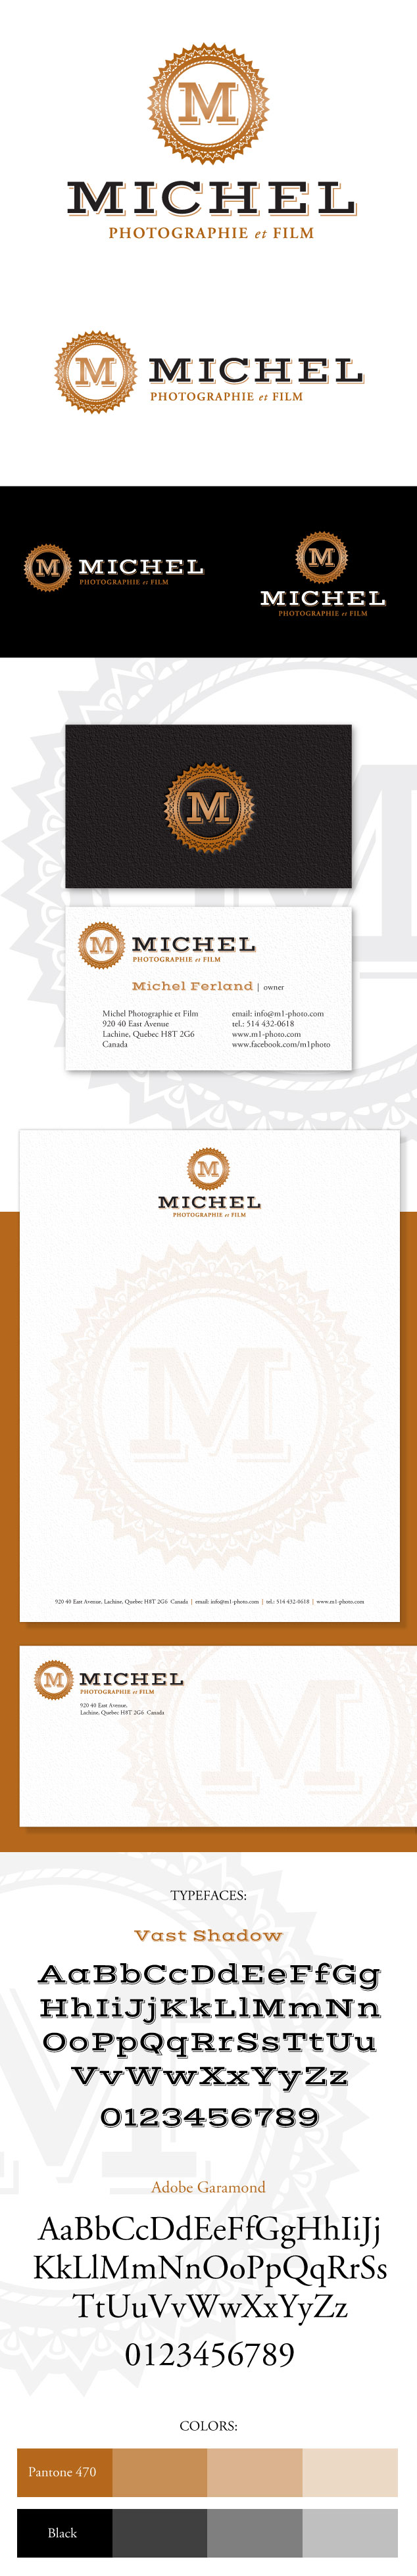 Michel Photo et Film Logo & Branding